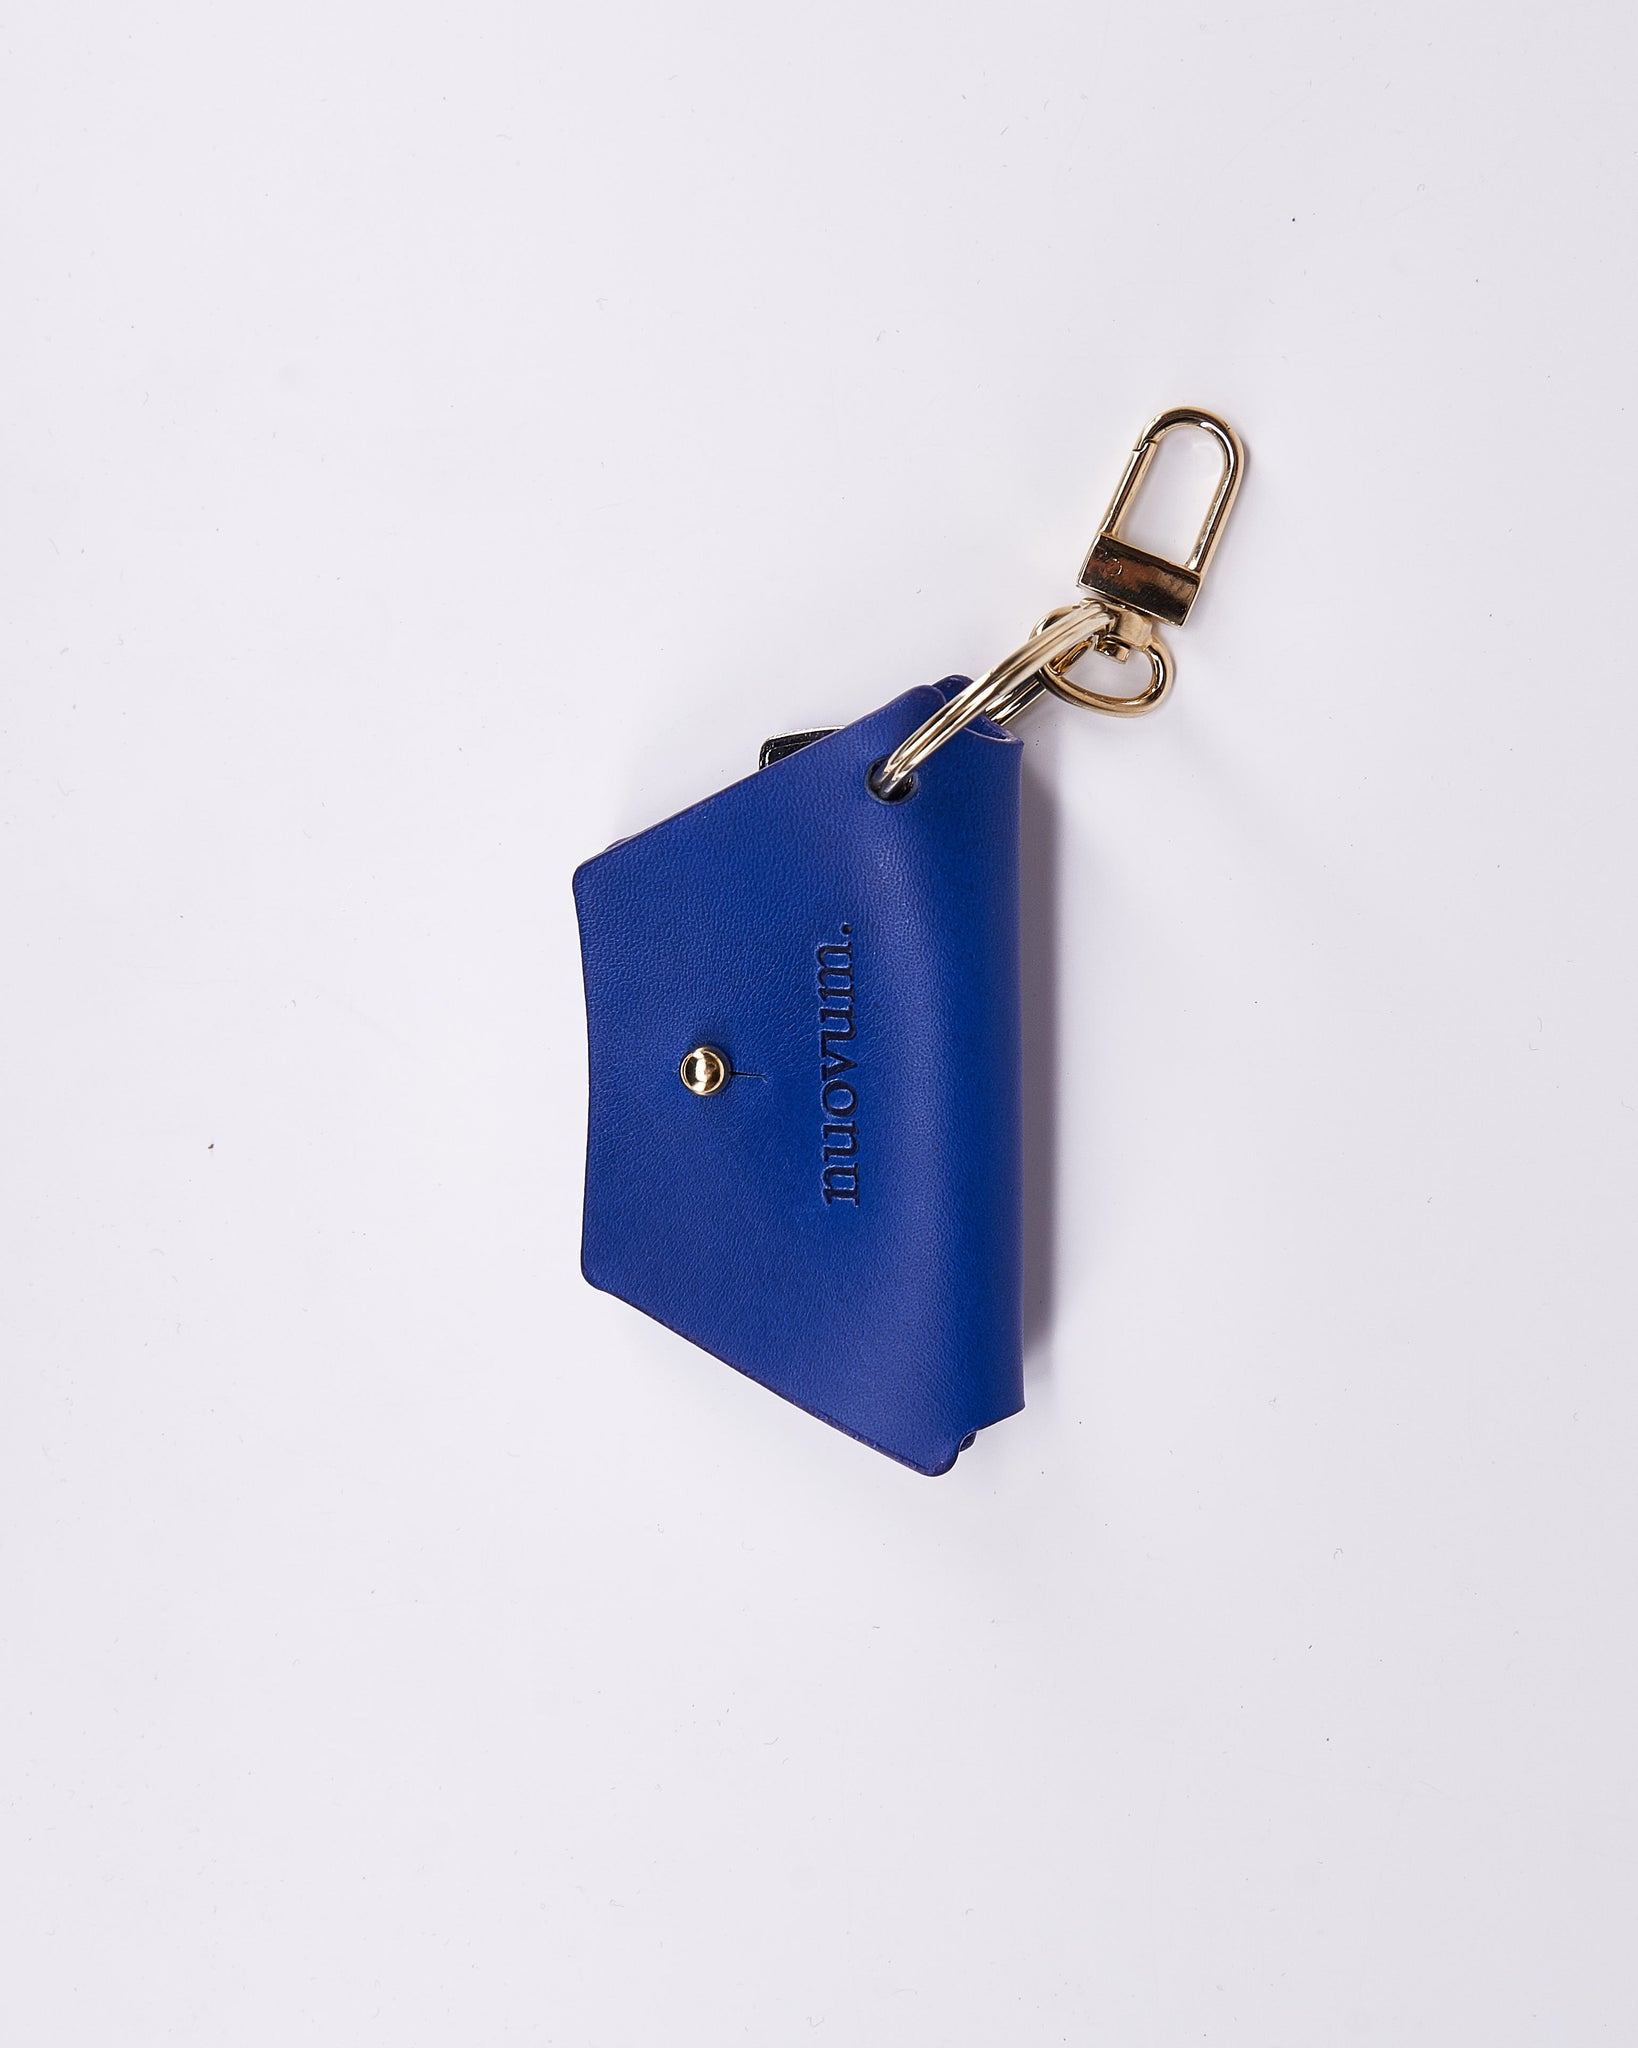 KeyWrap-Nuovum-Leather-Blue-localdesigners-Barcelona-Nuovum-Handmade-Close